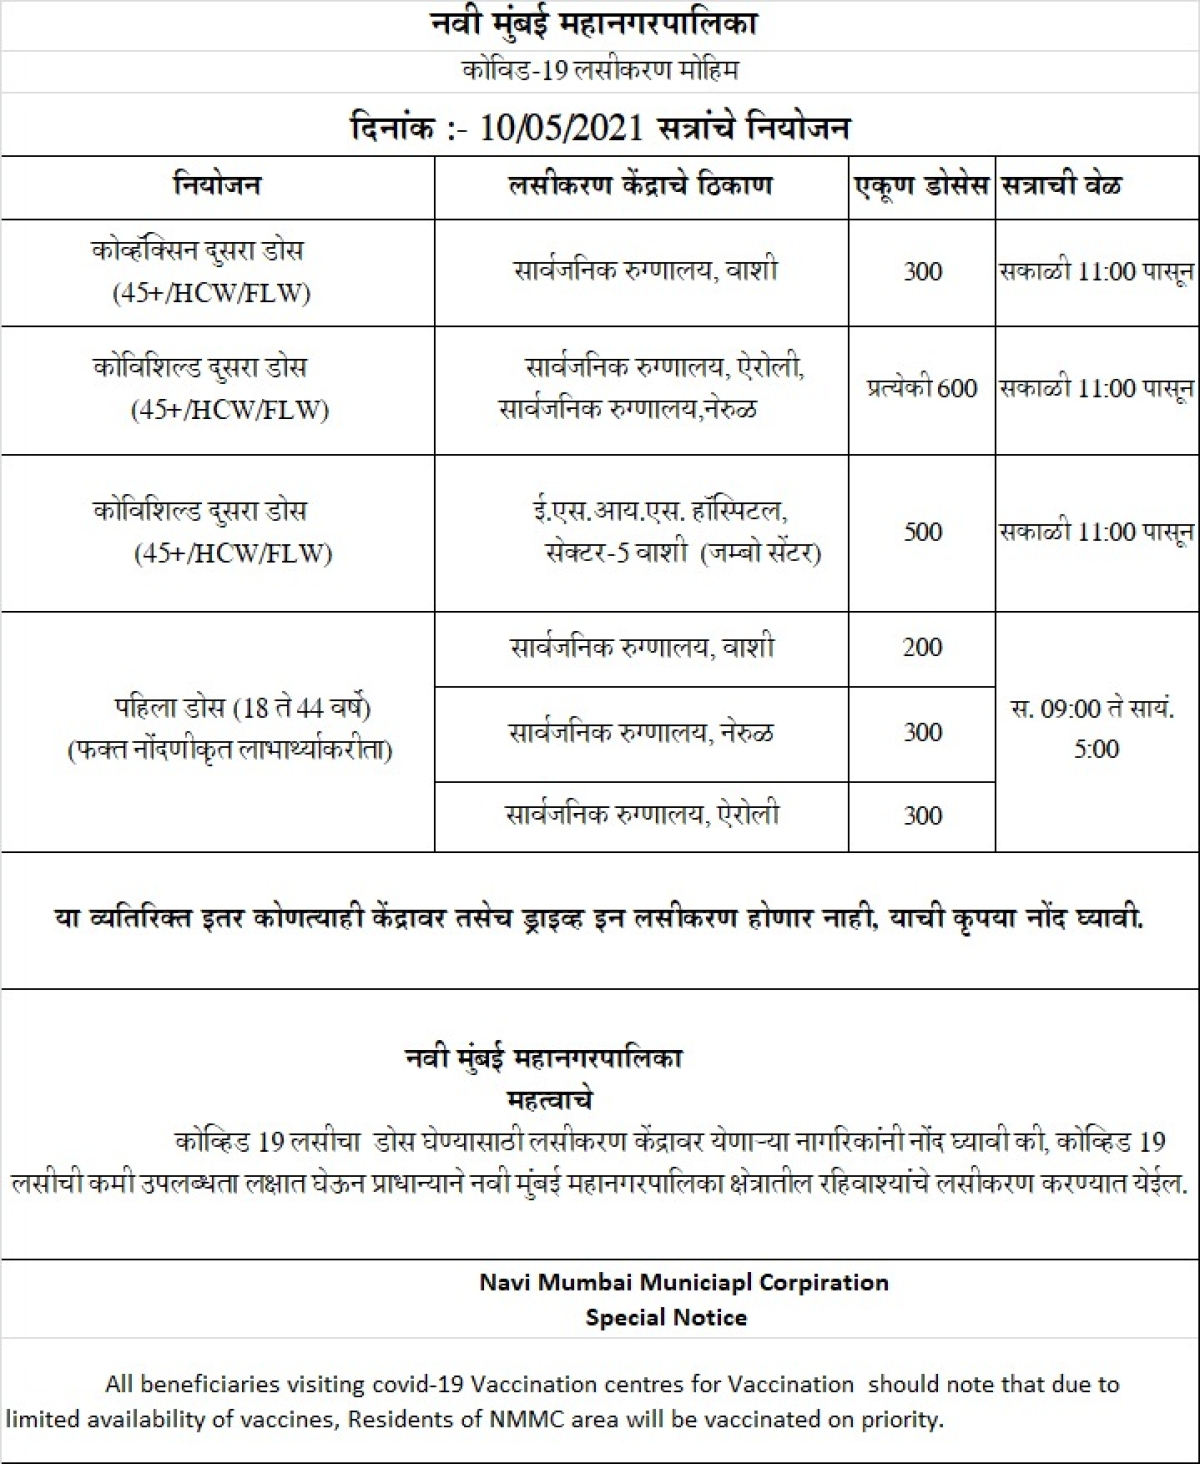 Mumbai: Latest updates - List of vaccination centres issued by BMC for 45+